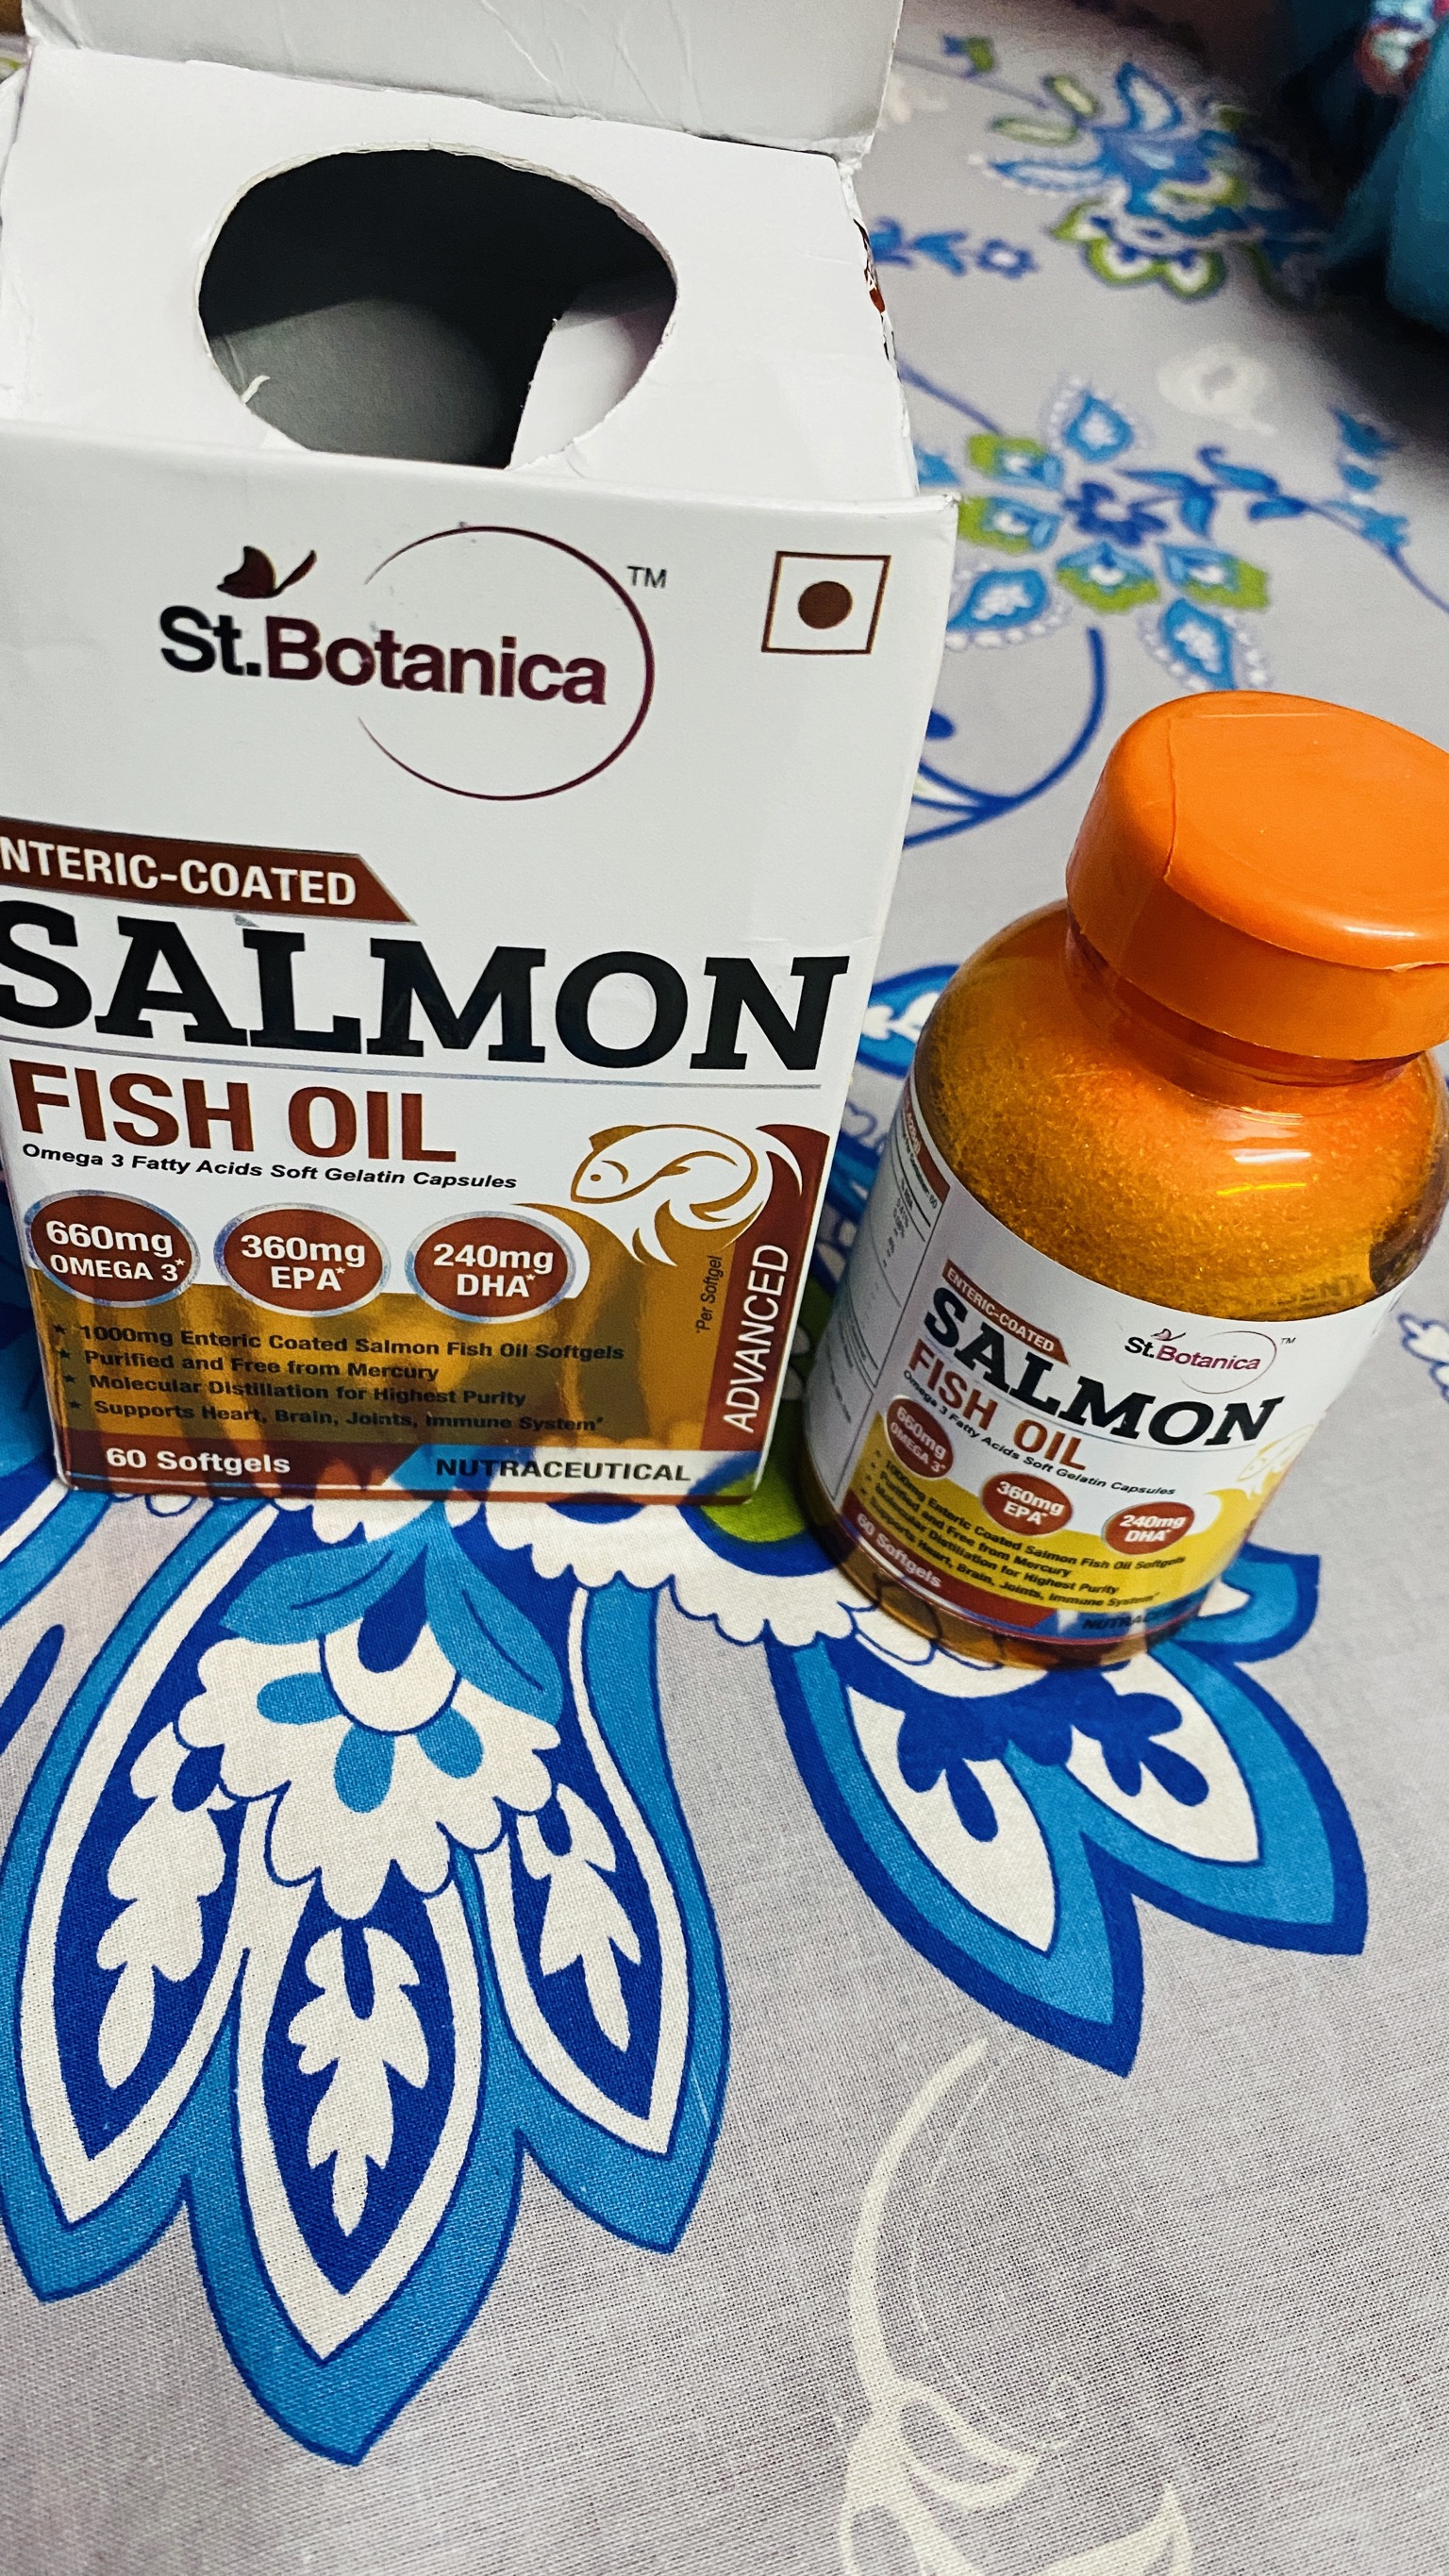 St.Botanica Fish Oil 1000mg Advanced Double Strength -Great for healthy lifestyle-By beauty_by_ranjana